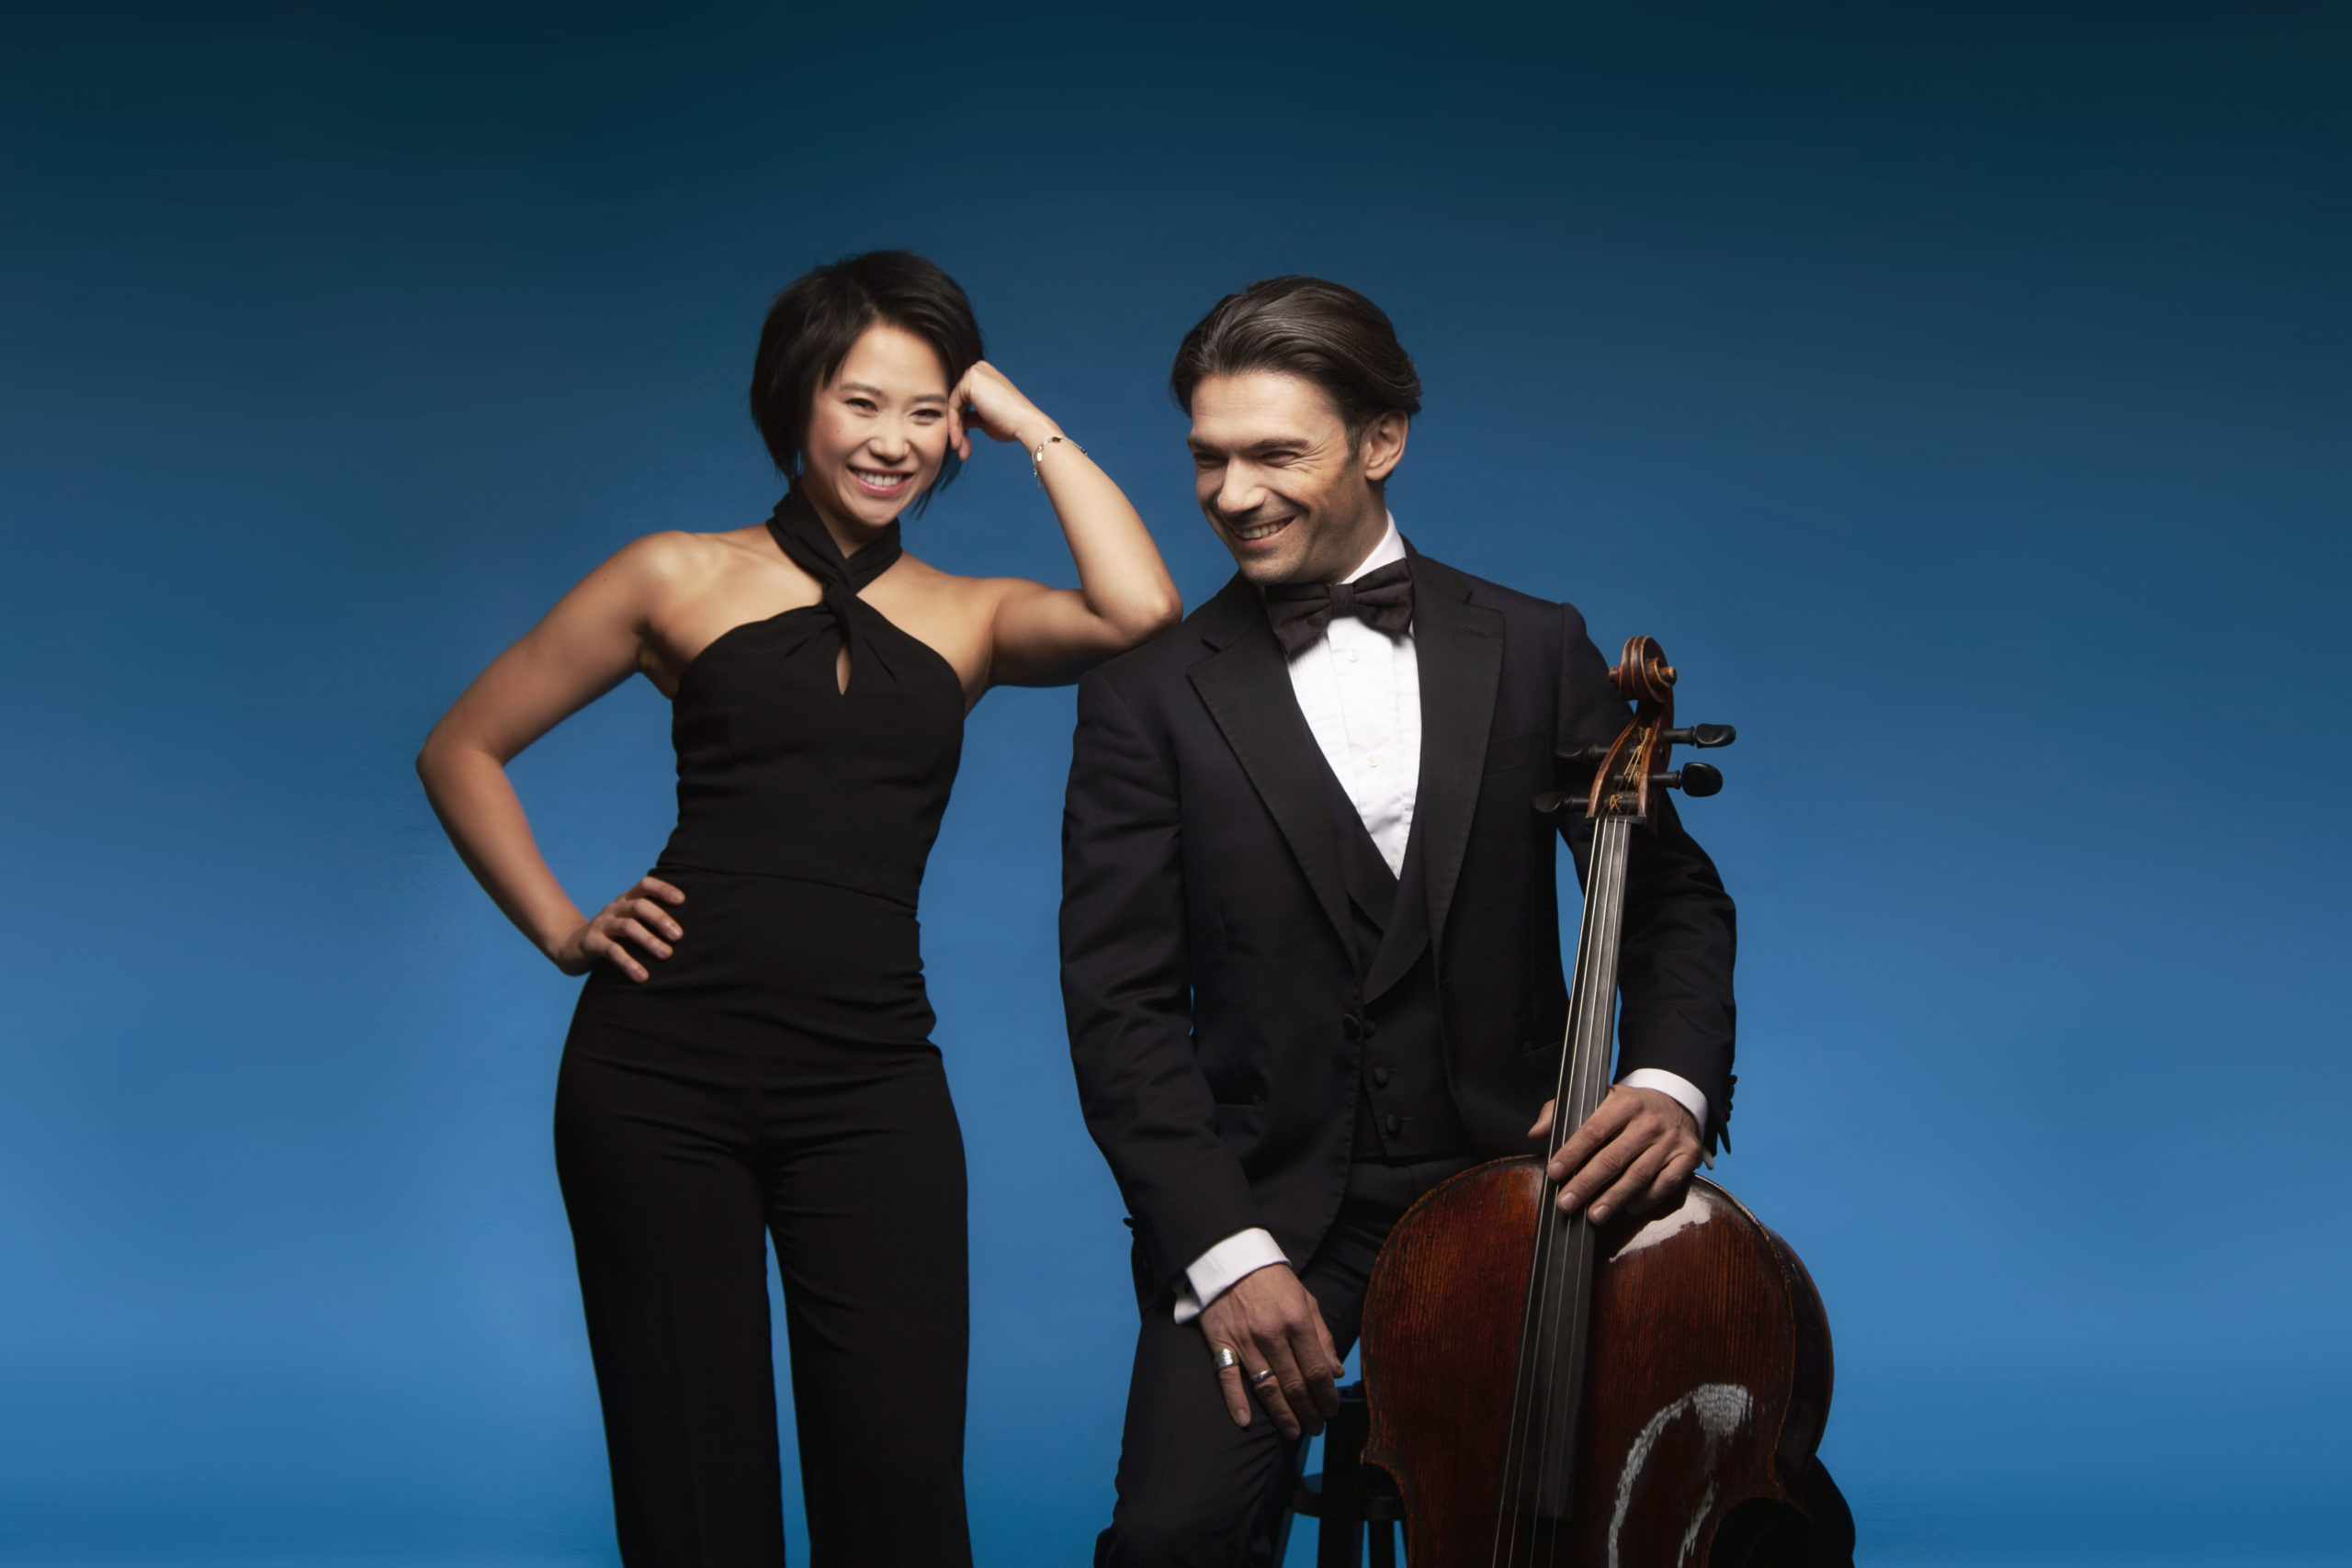 Gautier Capucon Yuja Wang cello piano classical music performance recording artists album Warner Classics Koerner Hall Chopin Franck